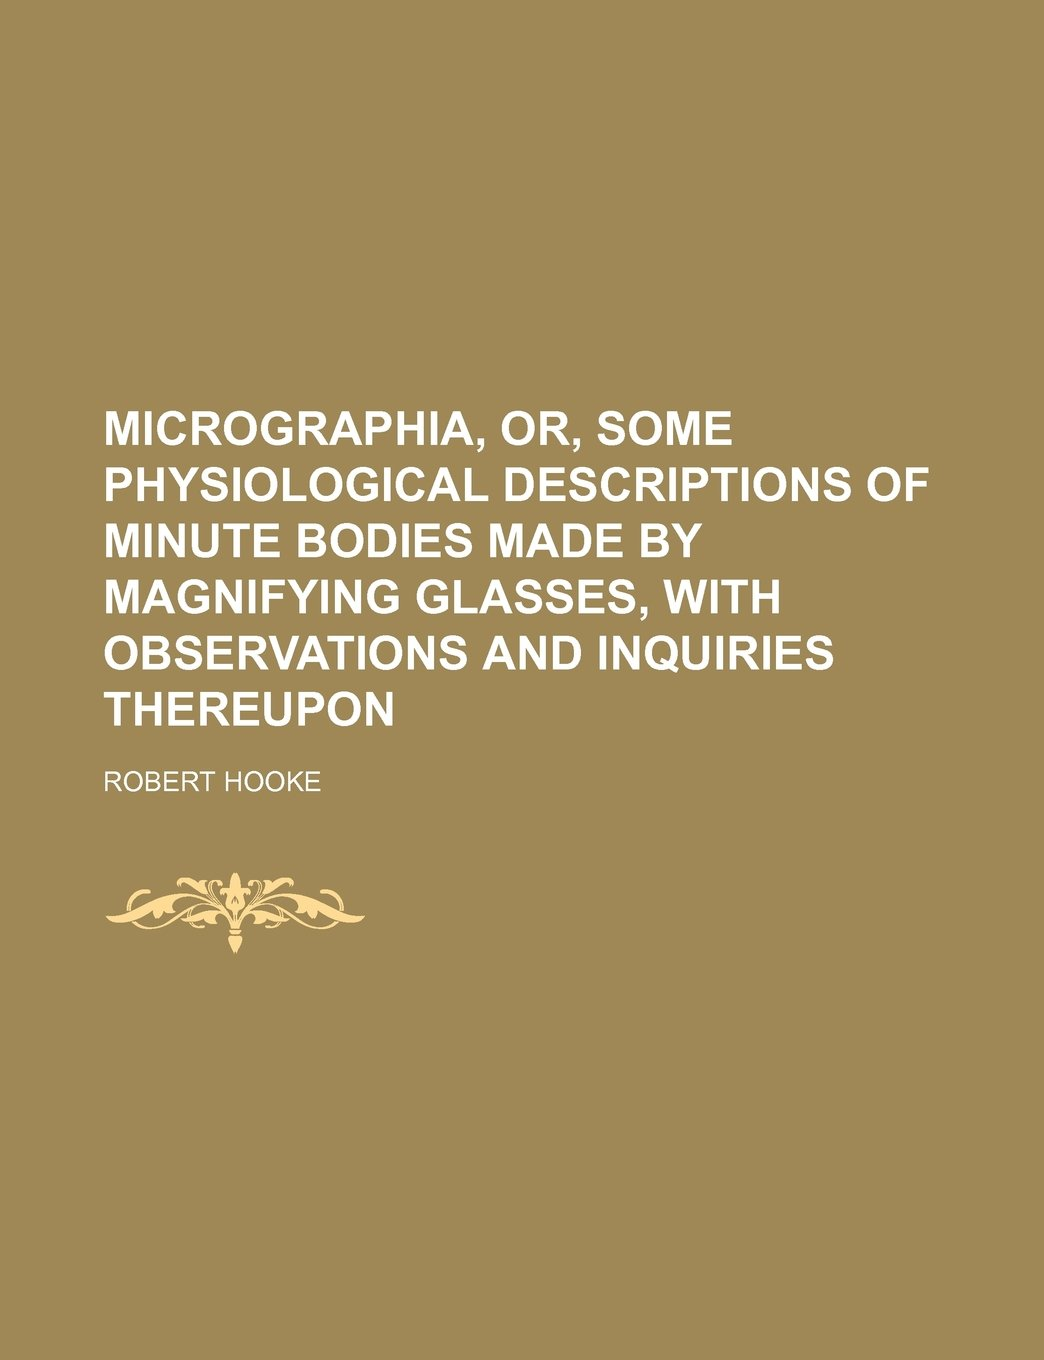 Micrographia, Or, Some Physiological Descriptions of Minute Bodies Made by Magnifying Glasses, with Observations and Inquiries Thereupon pdf epub